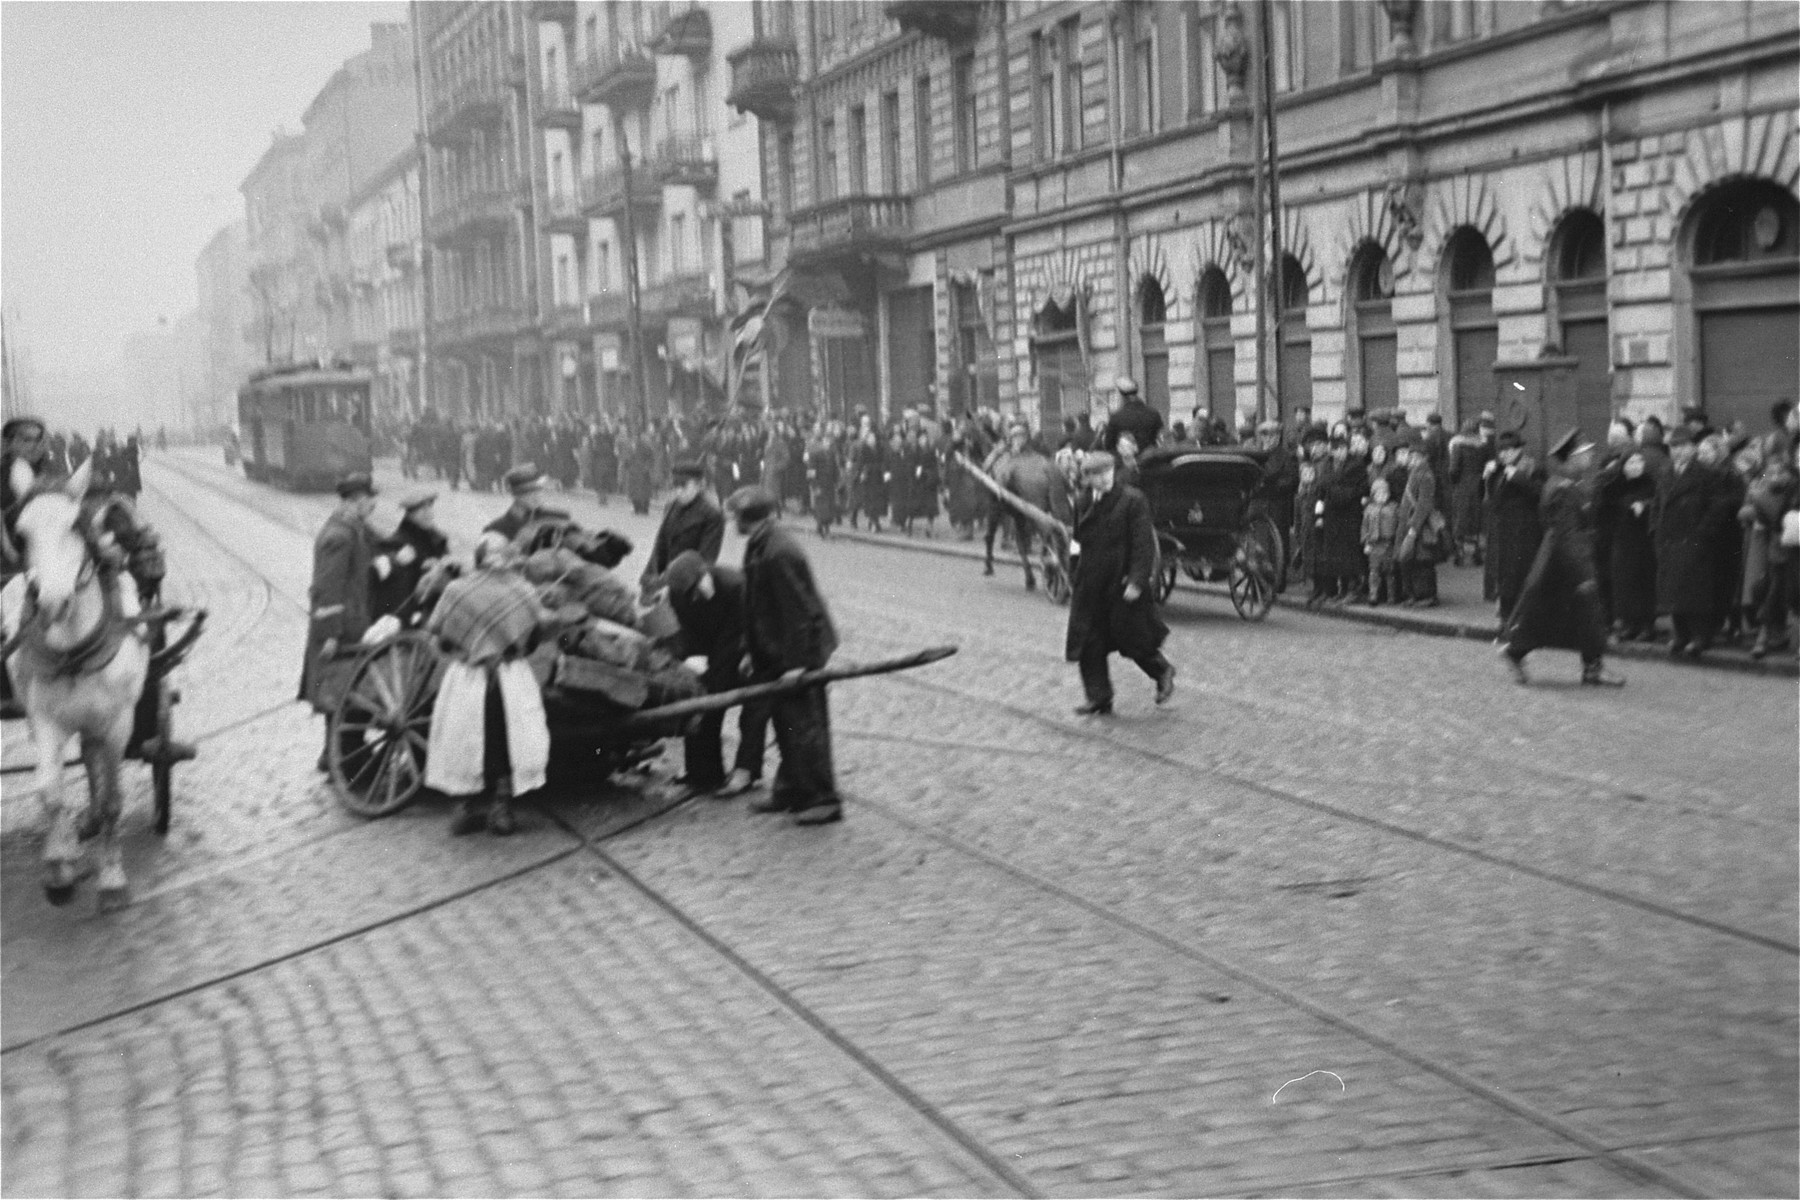 Jews attempt to repair a broken down wagon at the intersection of Nowolipki and Karmelicka Streets in the Warsaw ghetto.